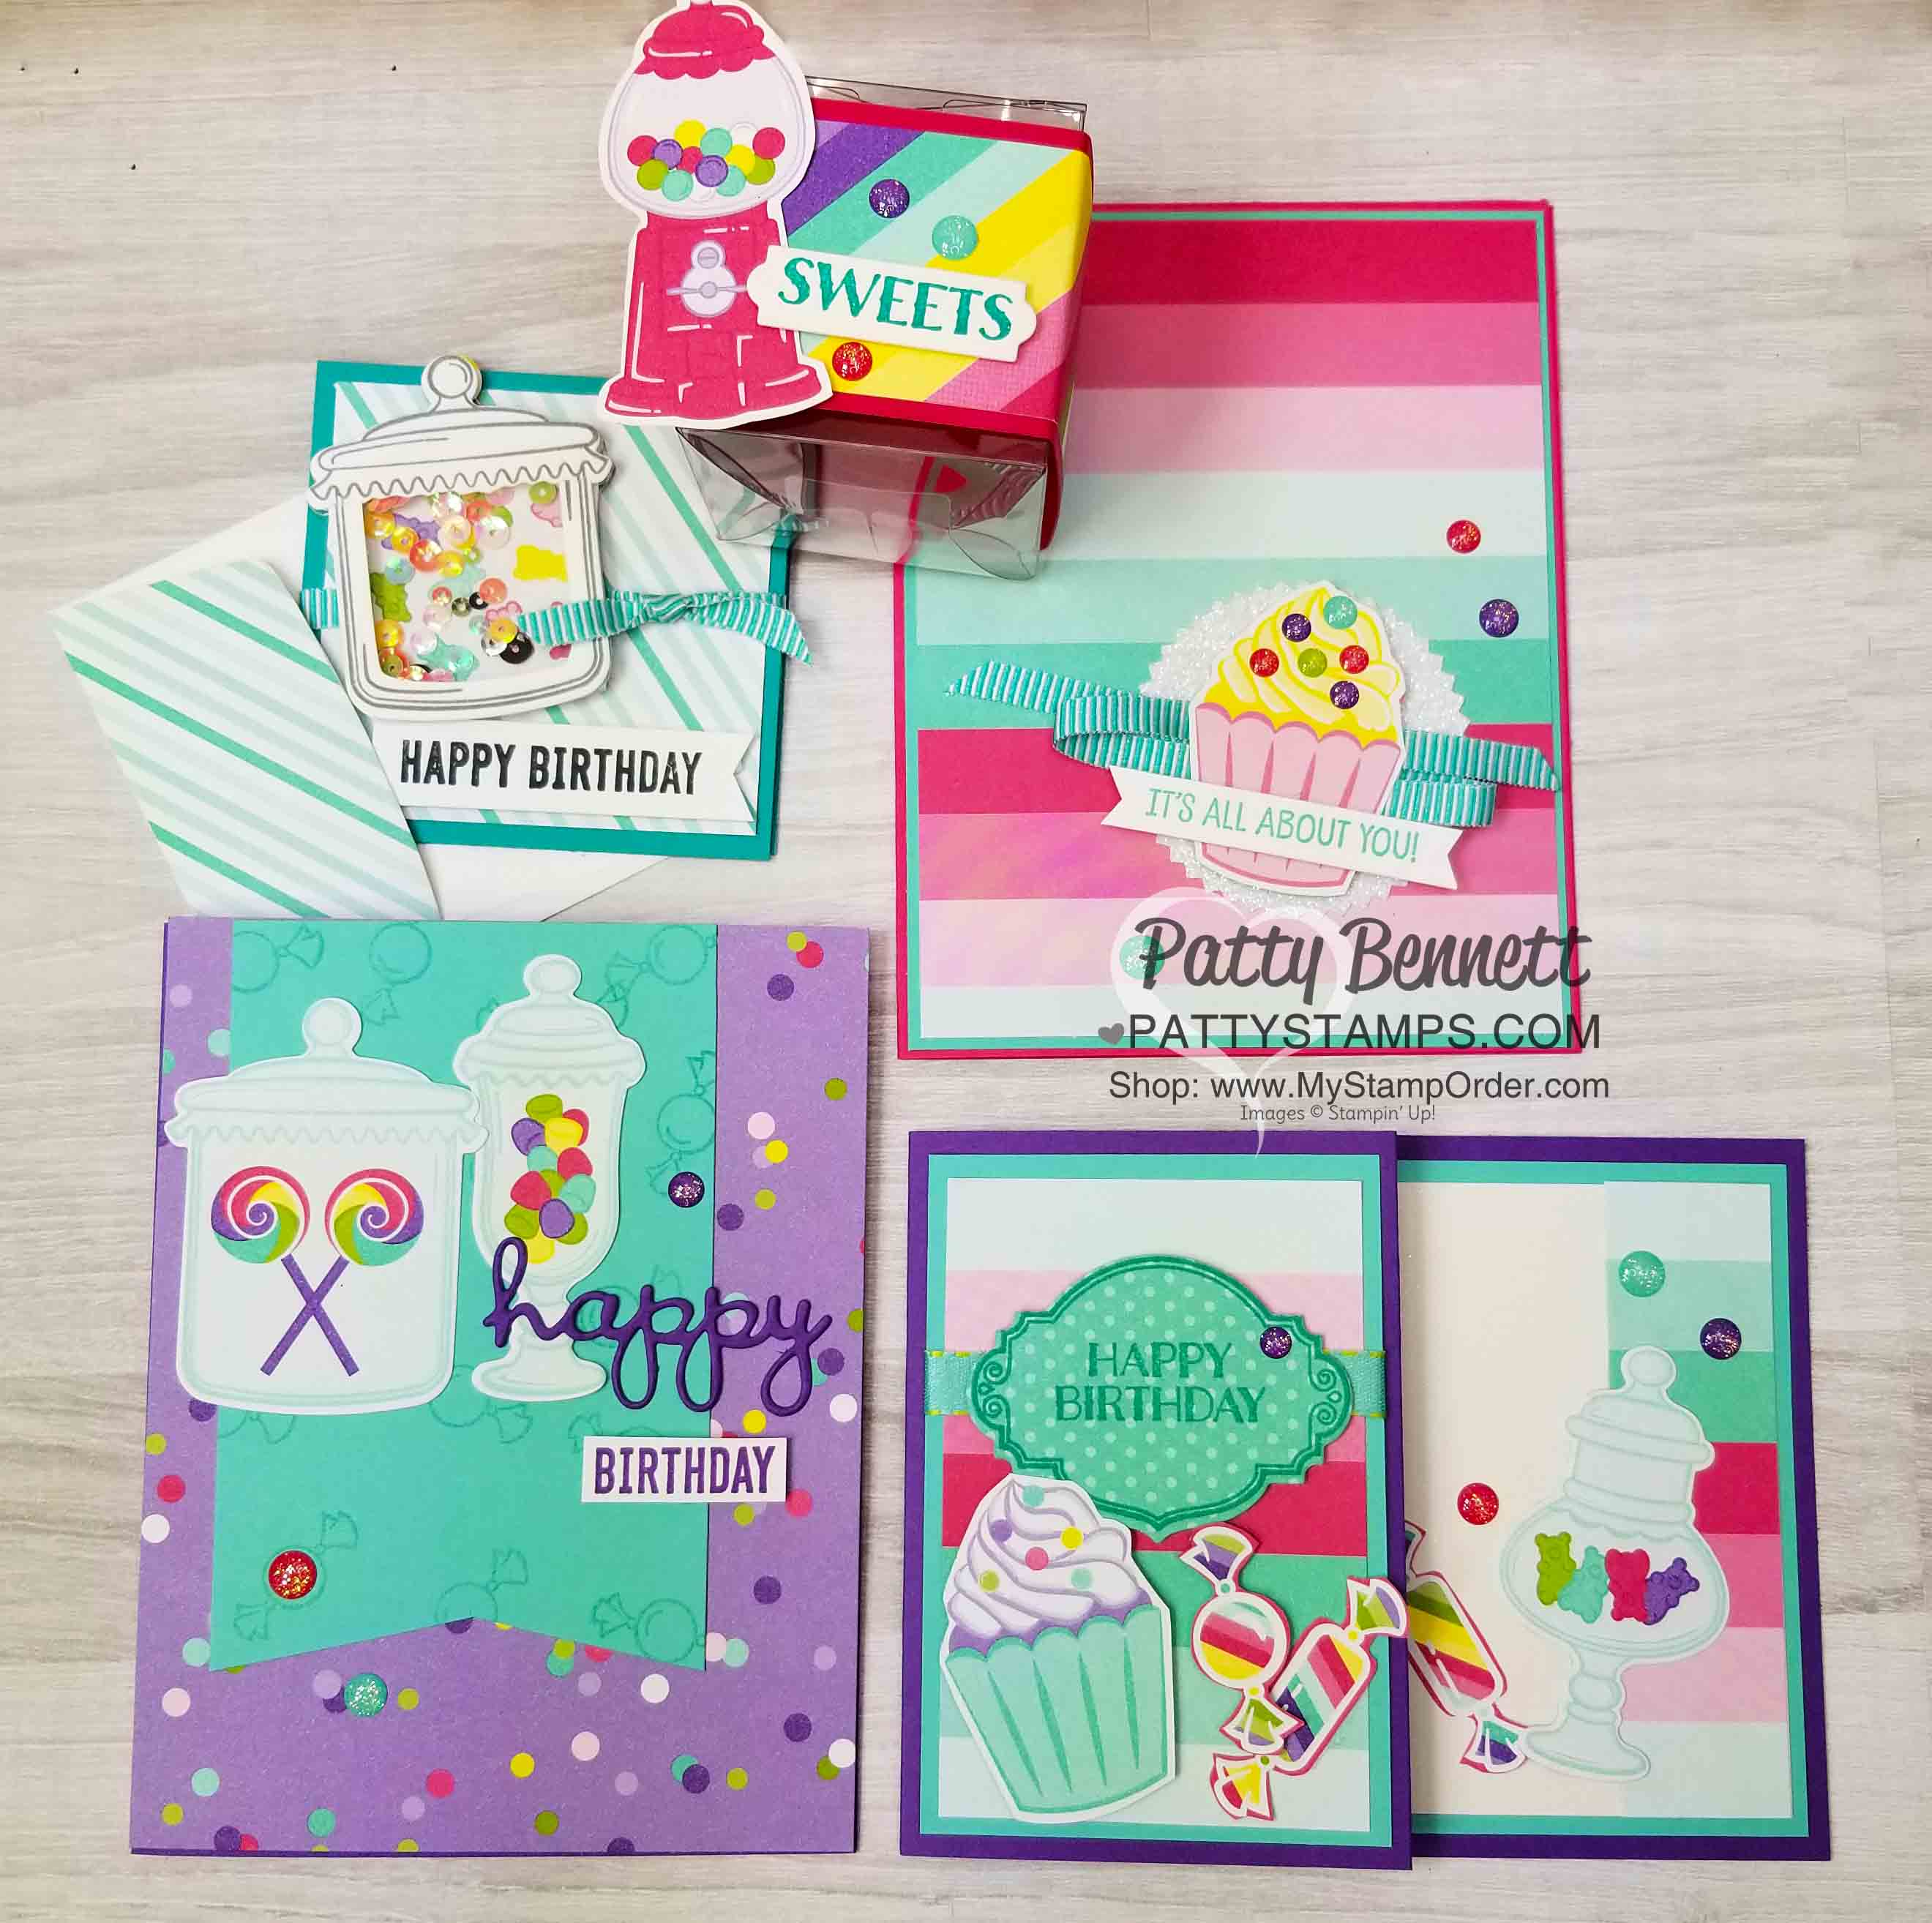 A Suite of Sweets Stampin' Up! projects